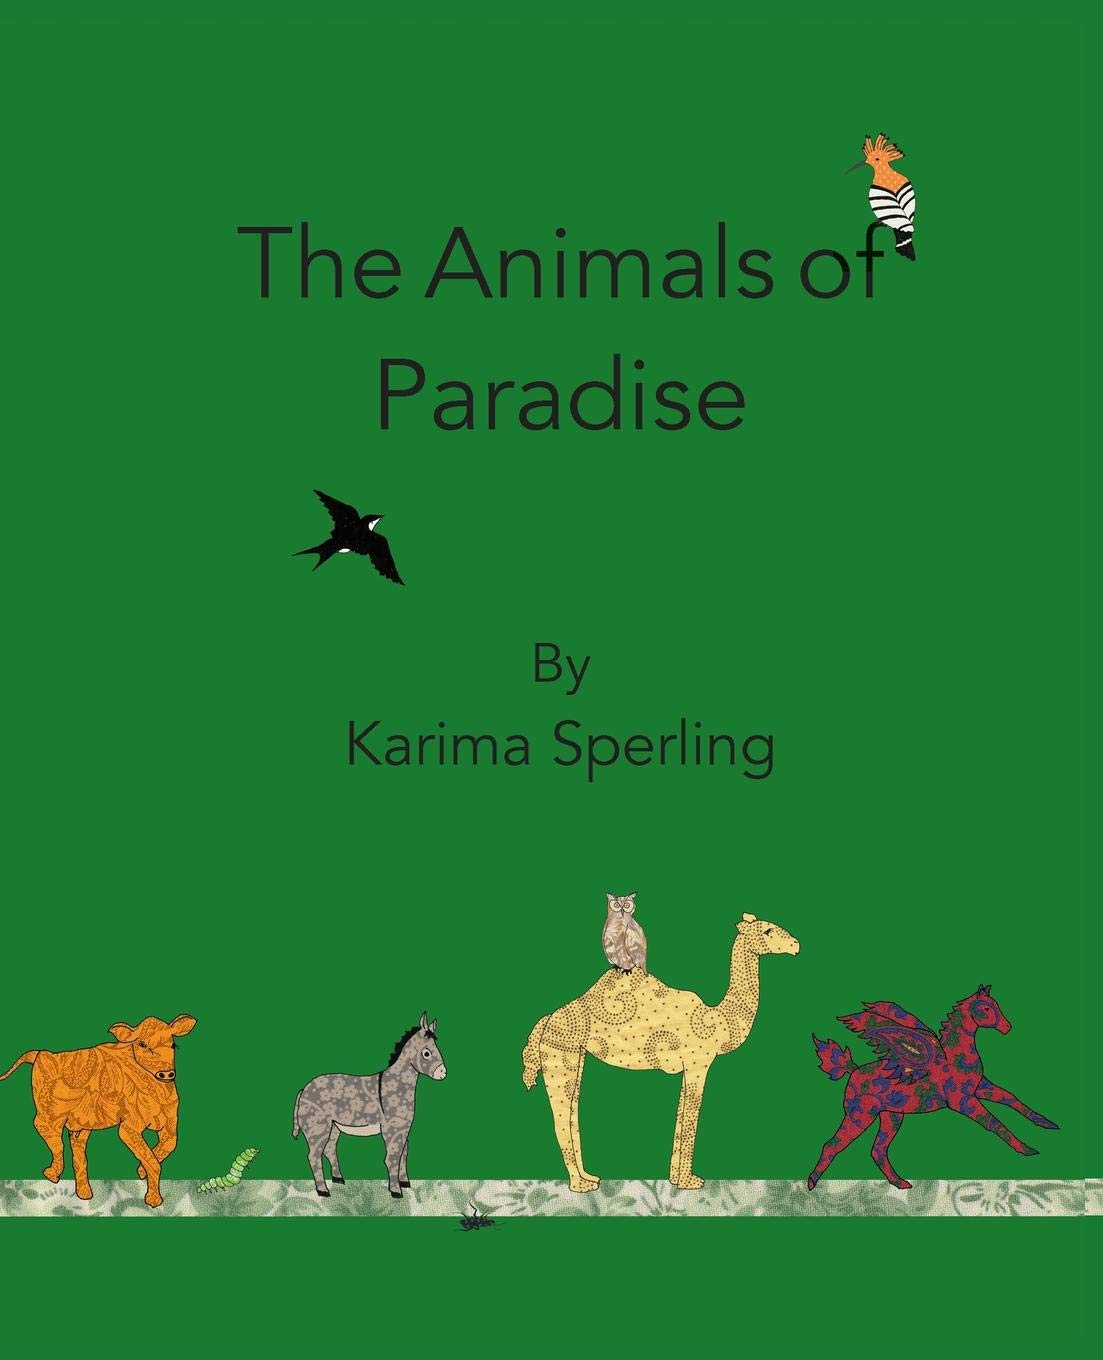 The Animals of Paradise